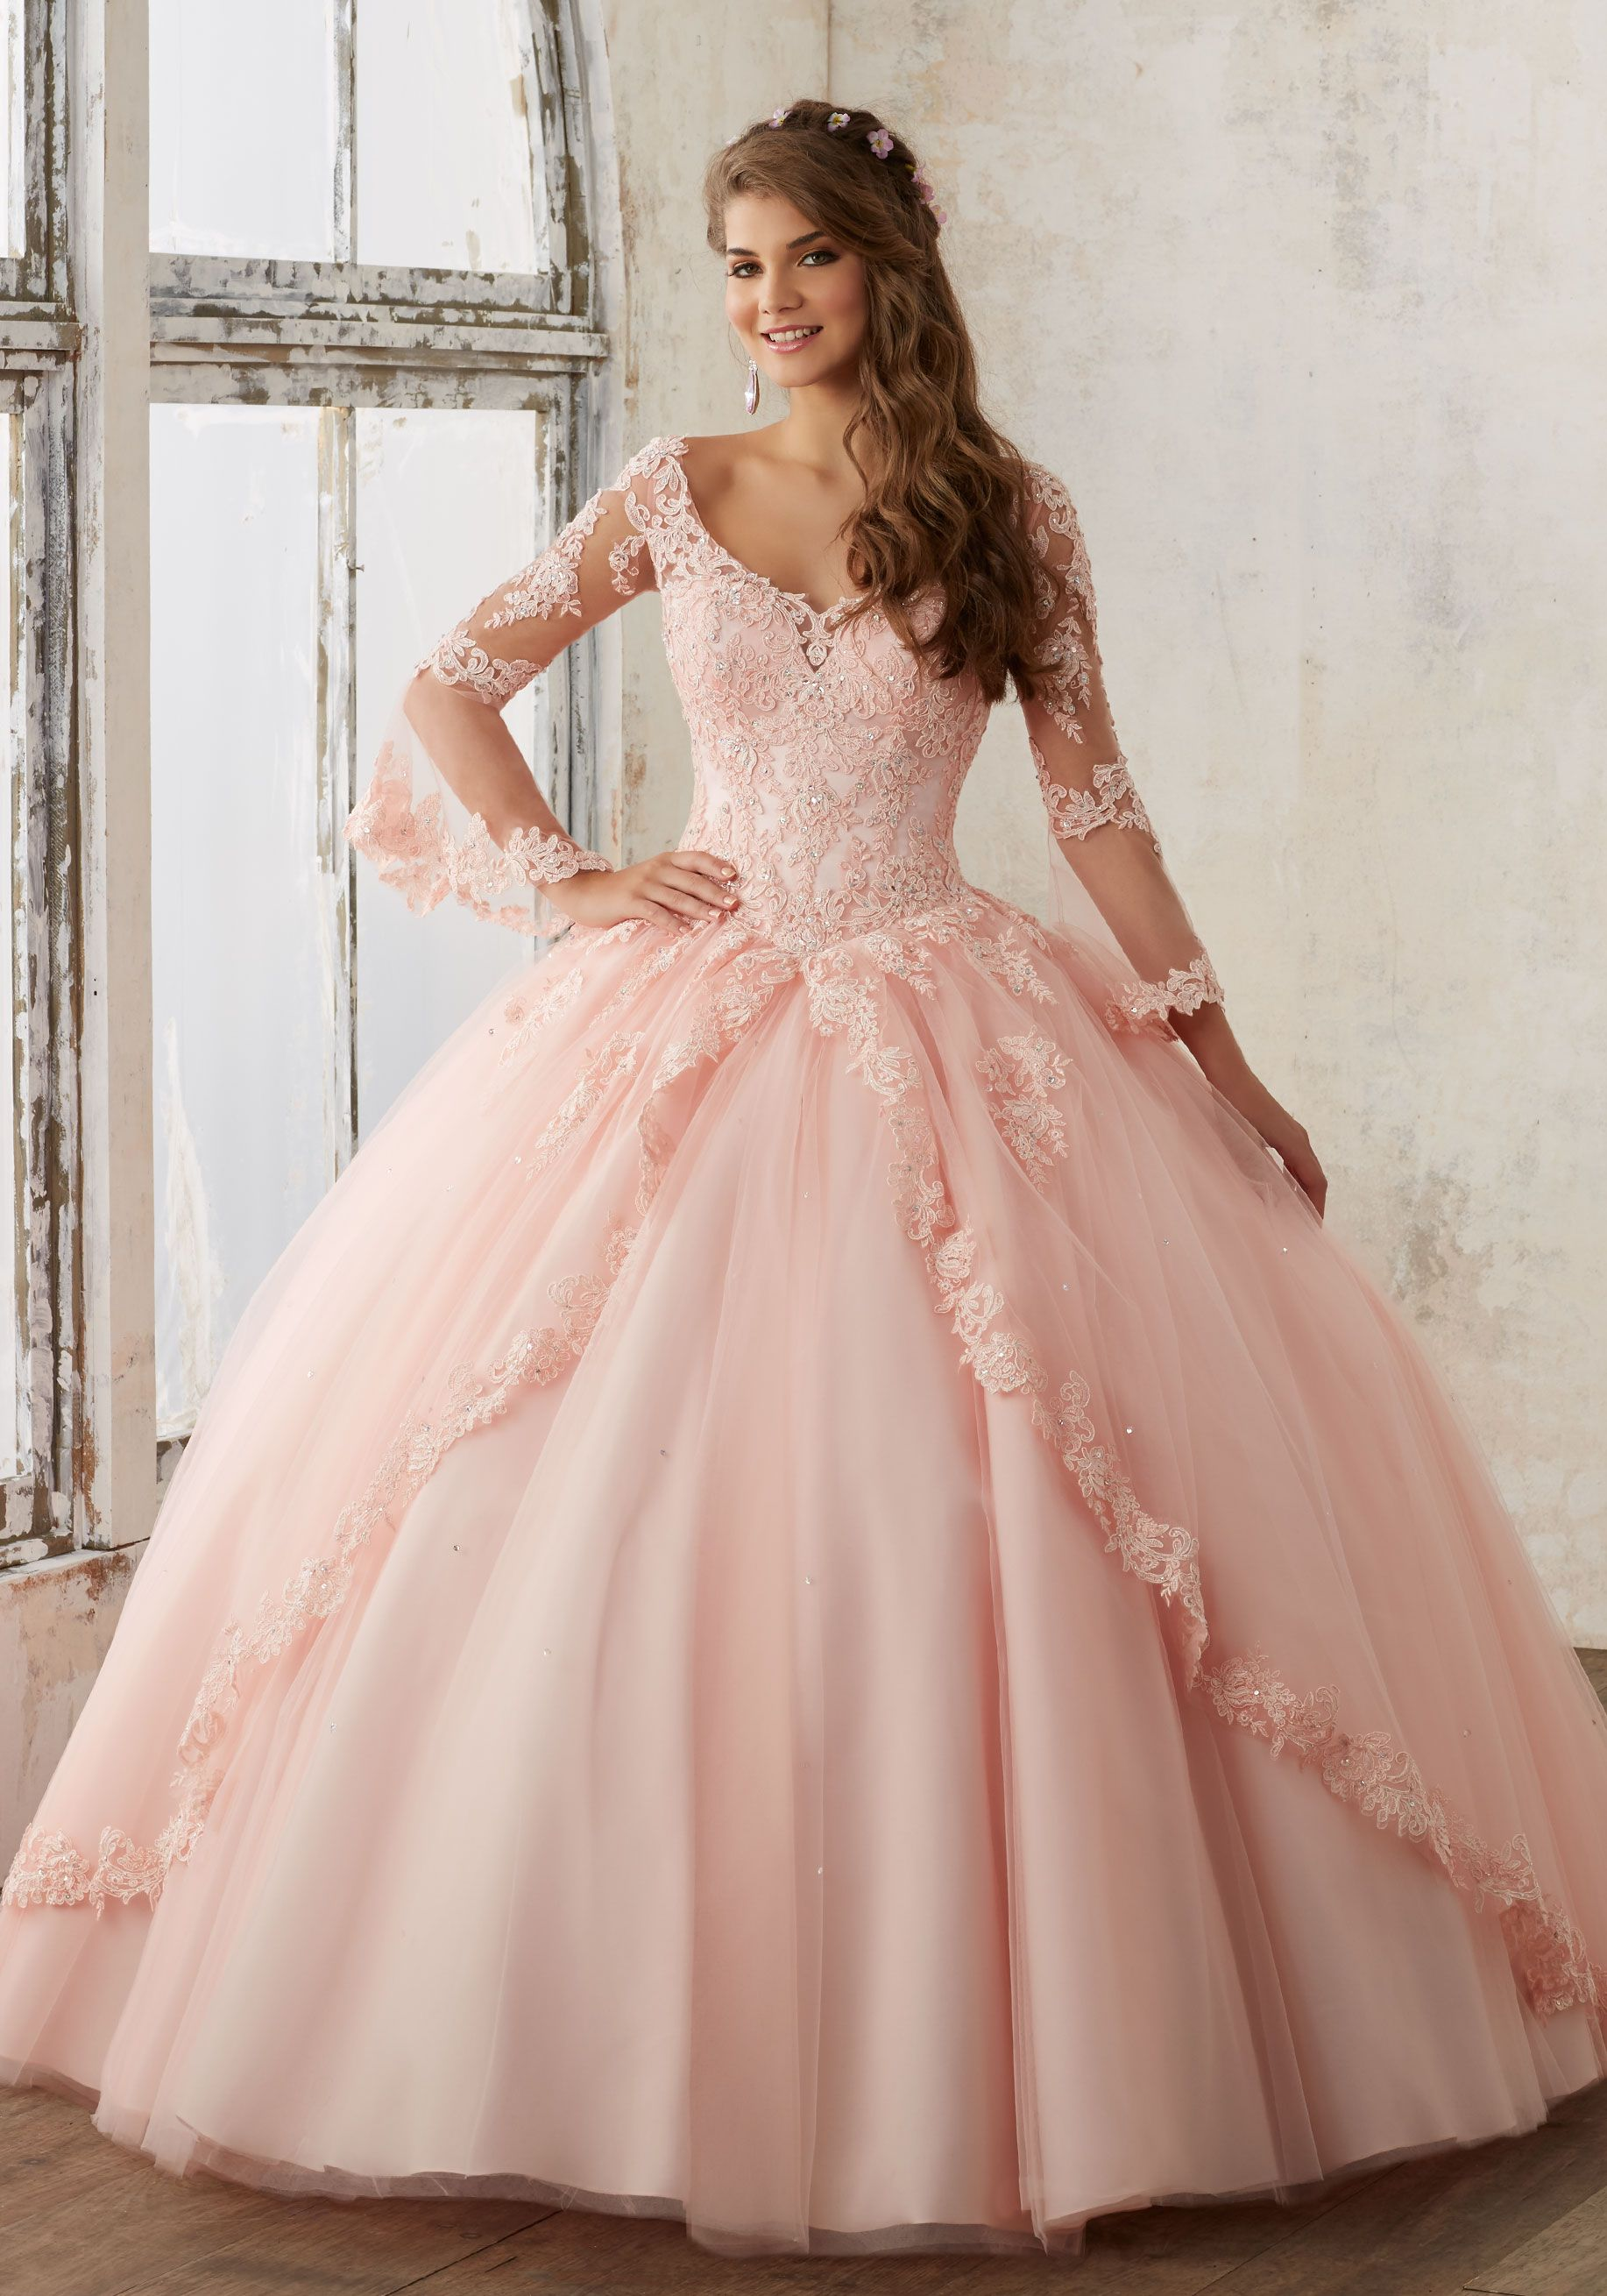 Beaded Lace on a Princess Tulle Quinceañera Ball Gown  b73484f35e32